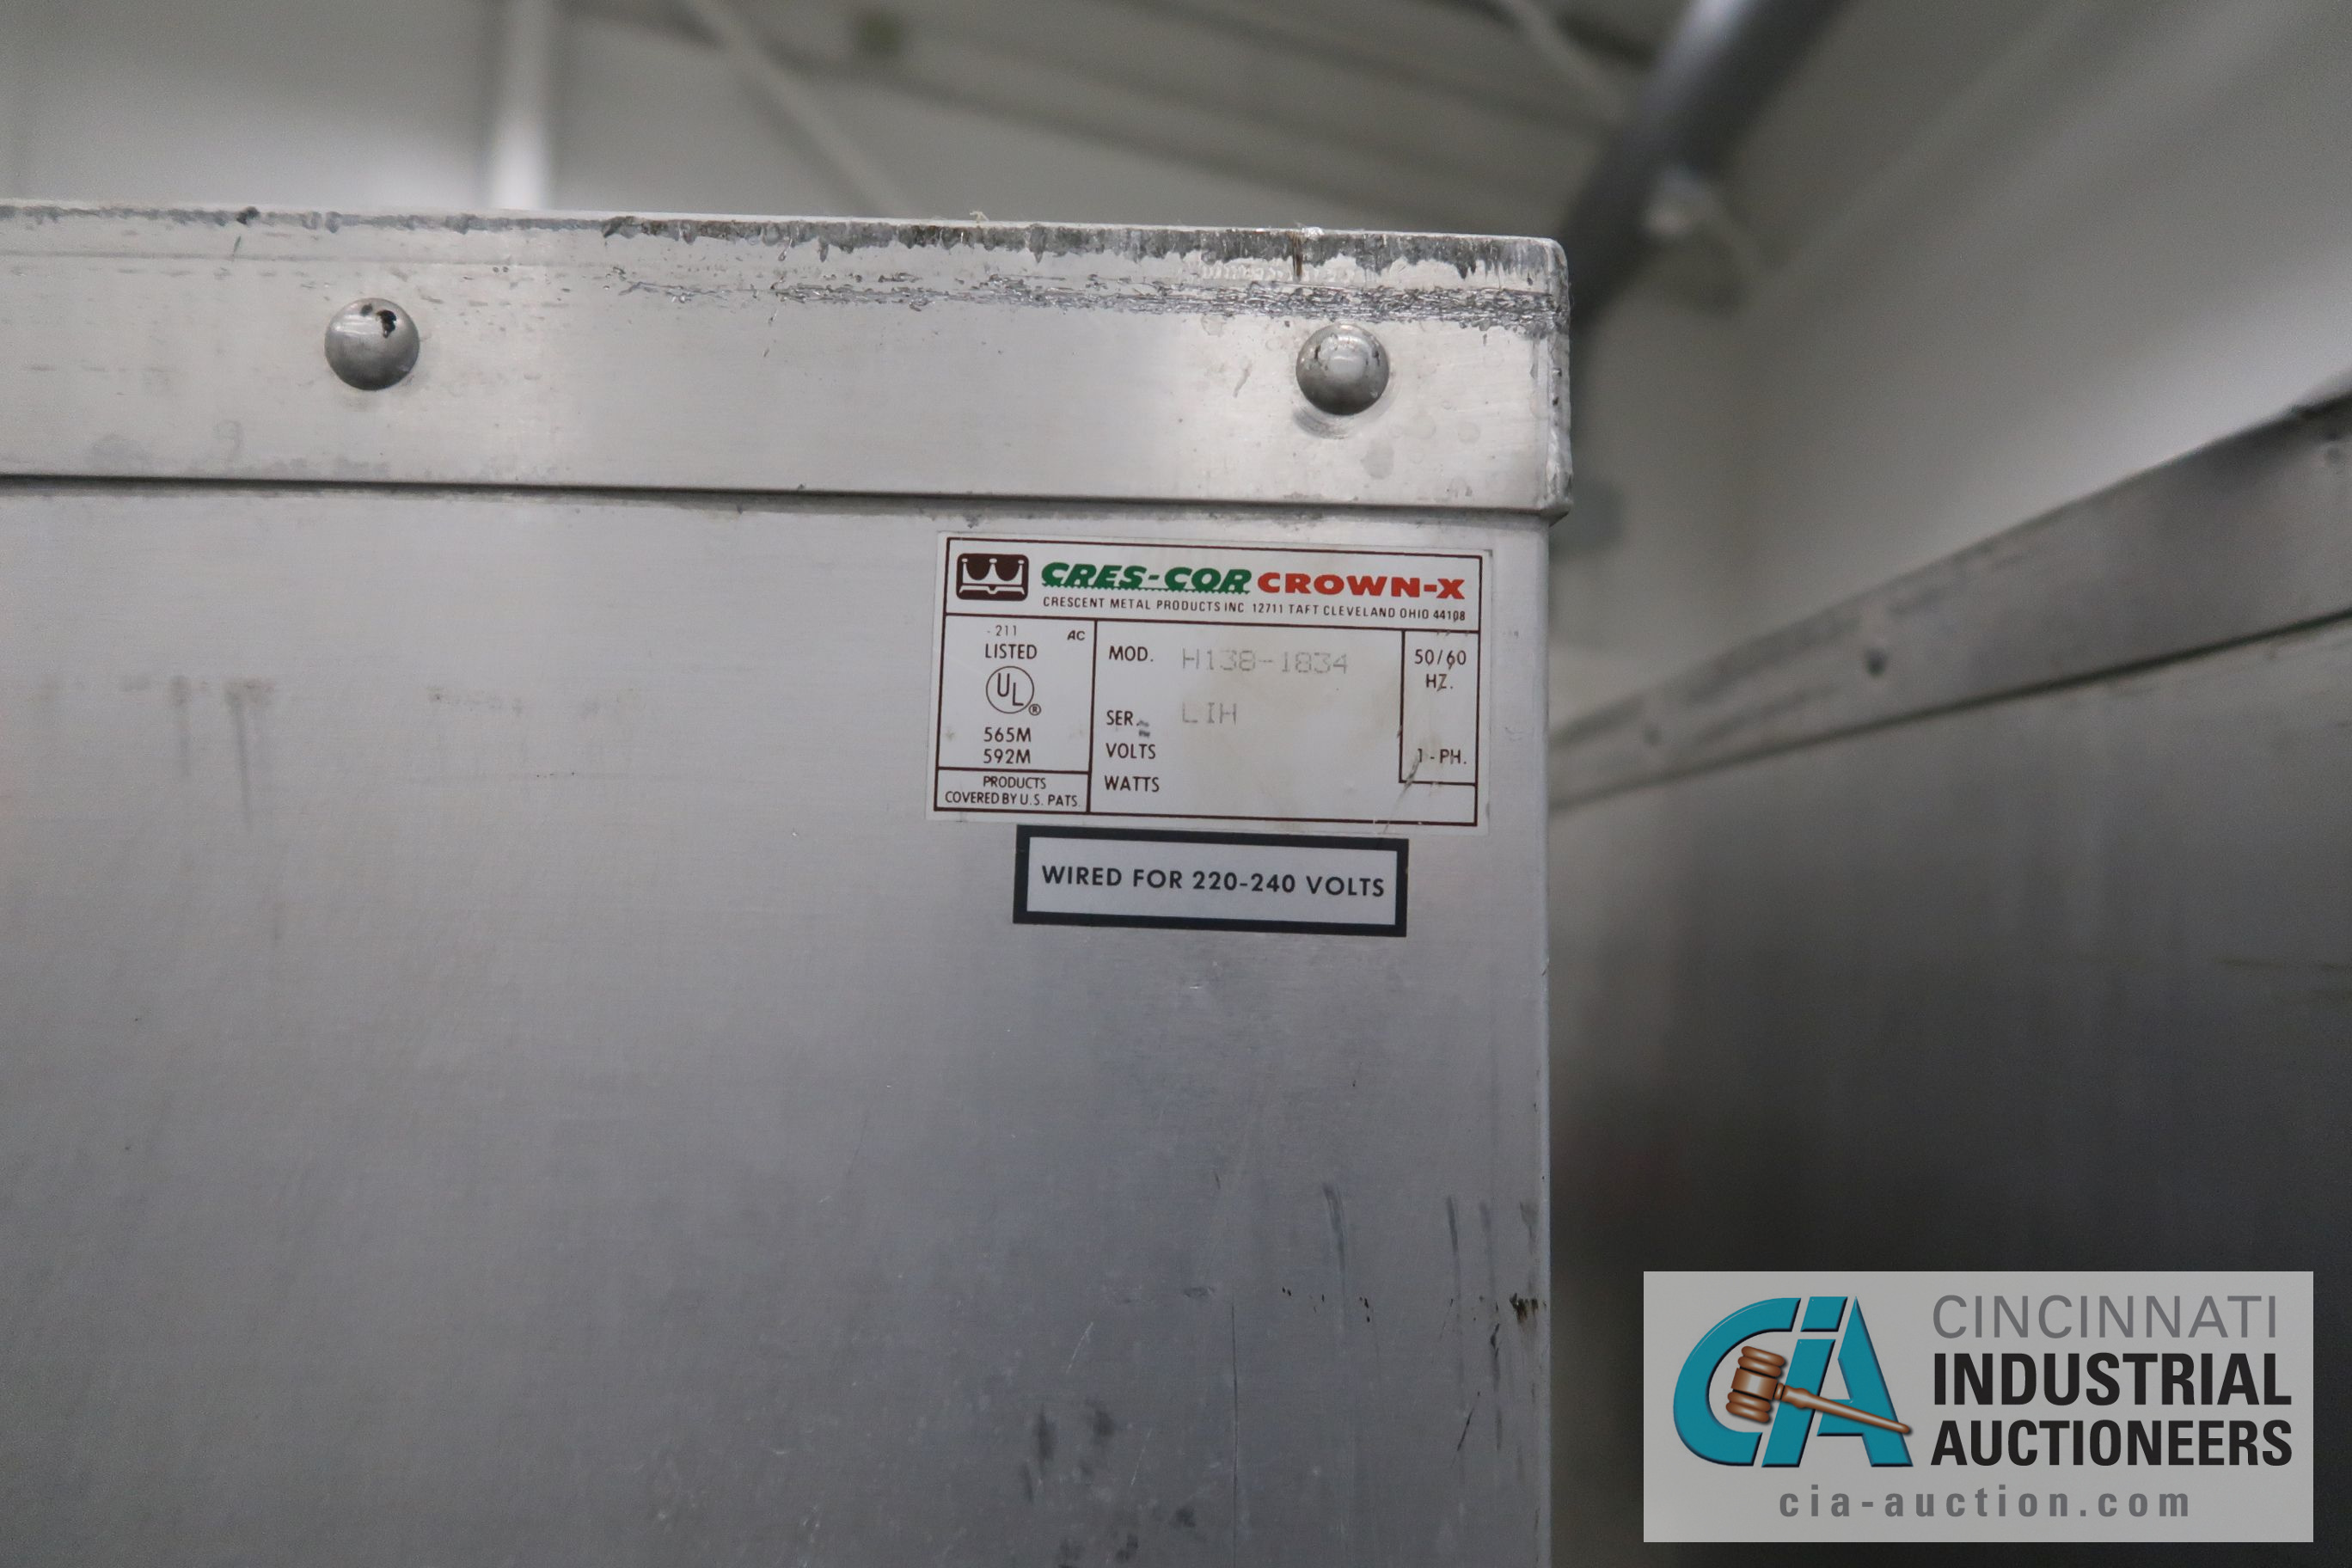 CRES-COR CROWN-X MODEL H-138-1834 TWO-DOOR ELECTRIC HOT CABINETS - Image 4 of 4